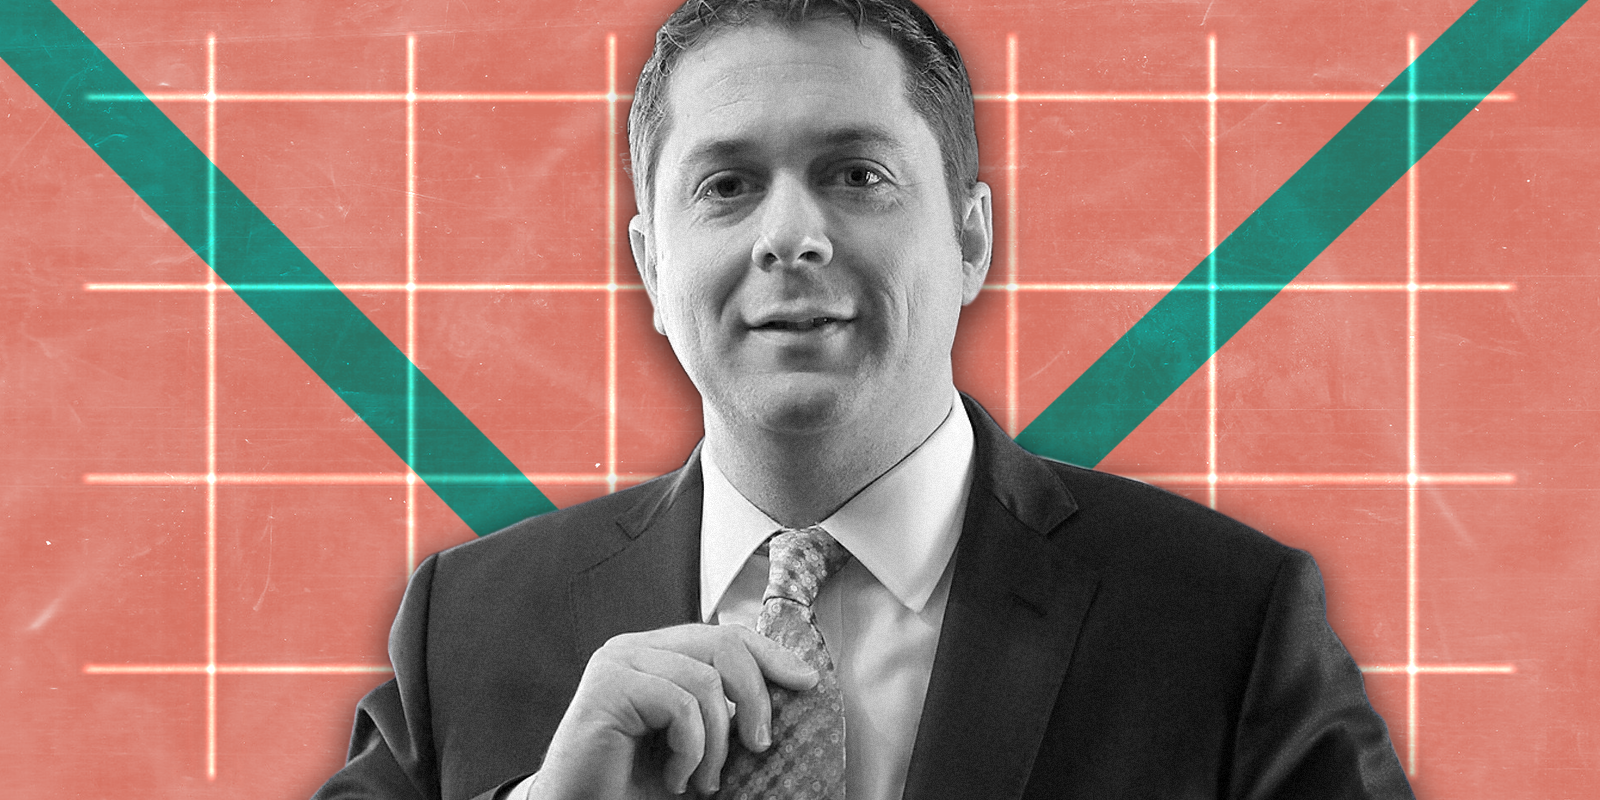 Andrew Scheer deserves to continue to lead Conservatives